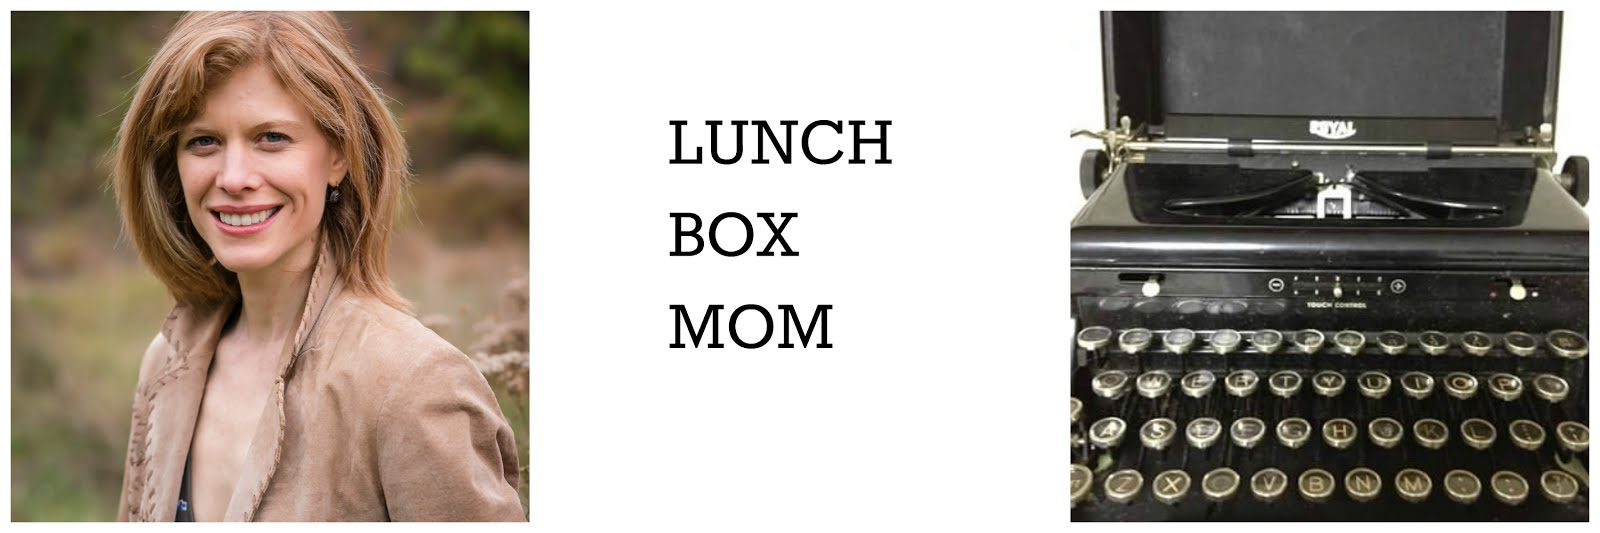 Lunch Box Mom